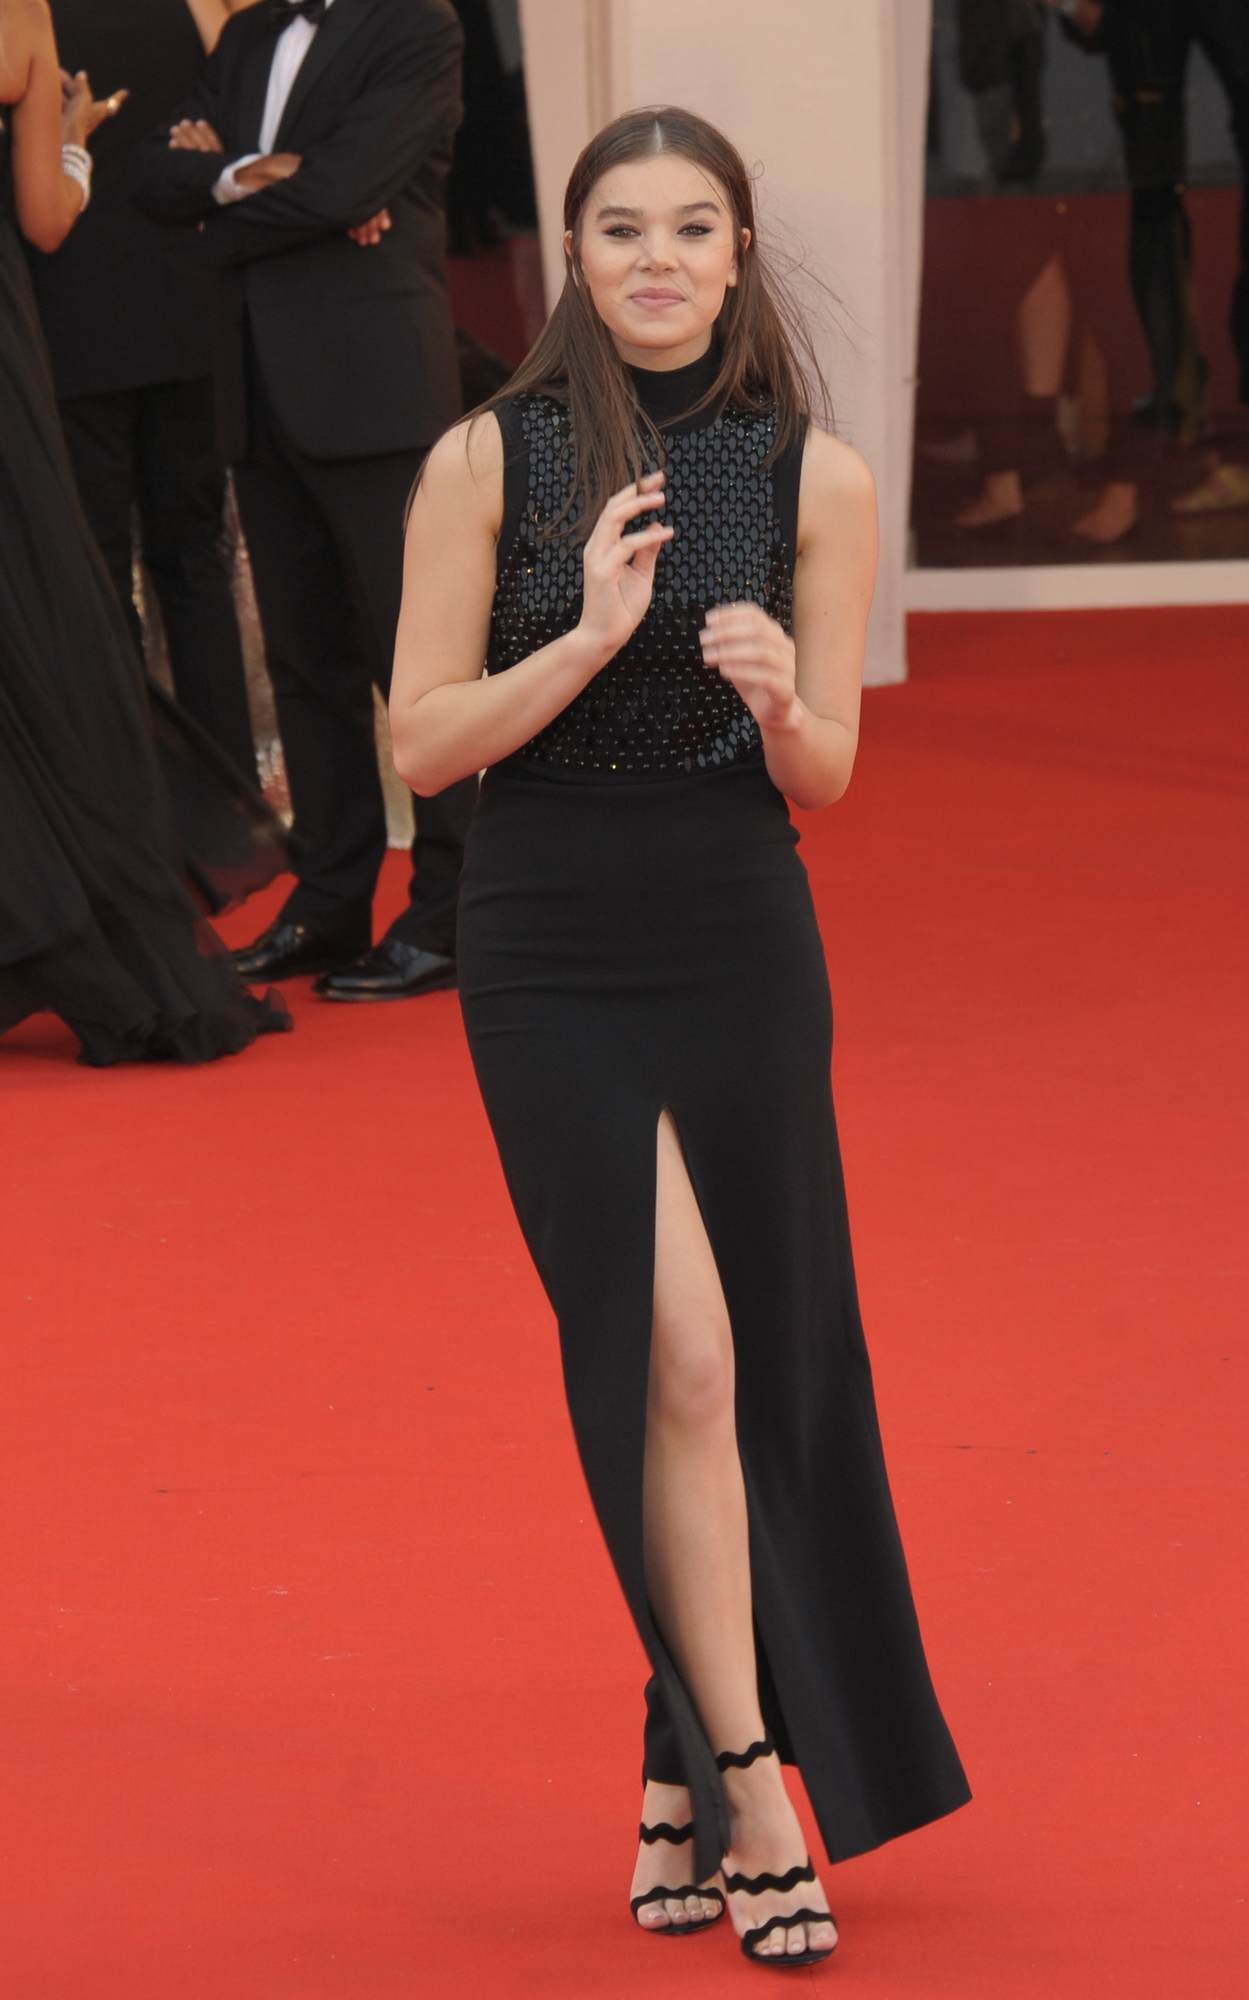 Hailee Steinfeld Looks Gorgeous In Black Sleek Dress At